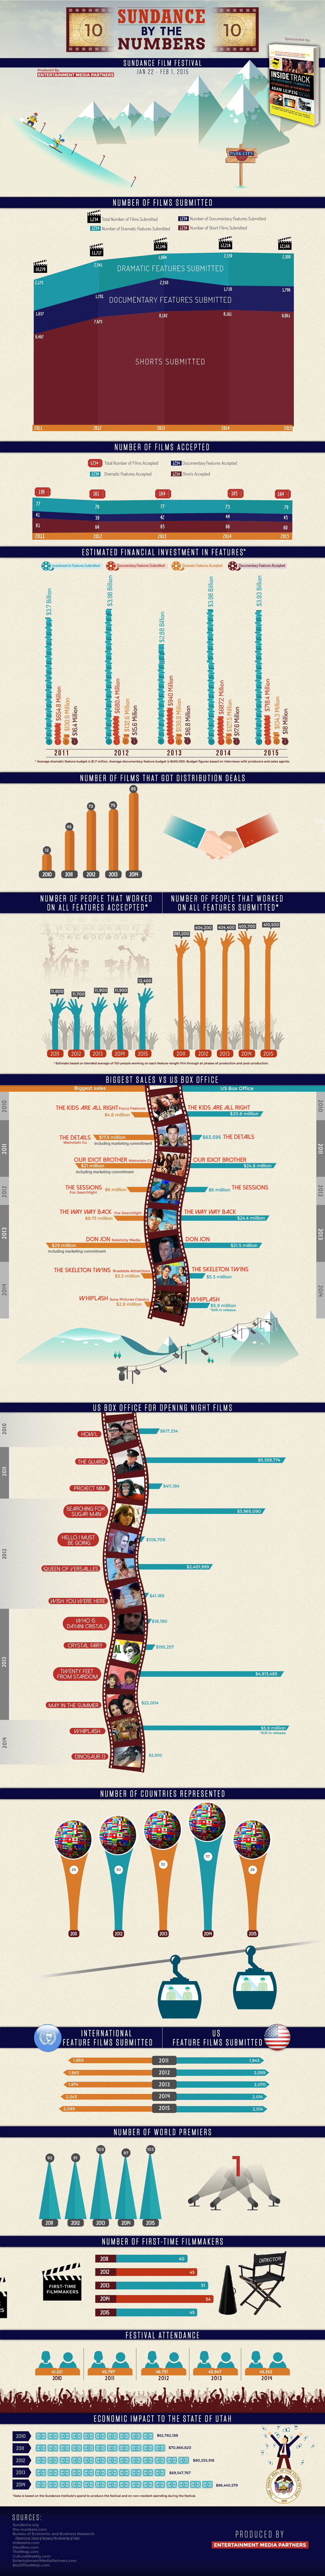 Sundance 2015 Infographic Produced by Entertainment Media Partners for Cultural Weekly. Sponsored by 'Inside Track for Independent Filmmakers,' available now.